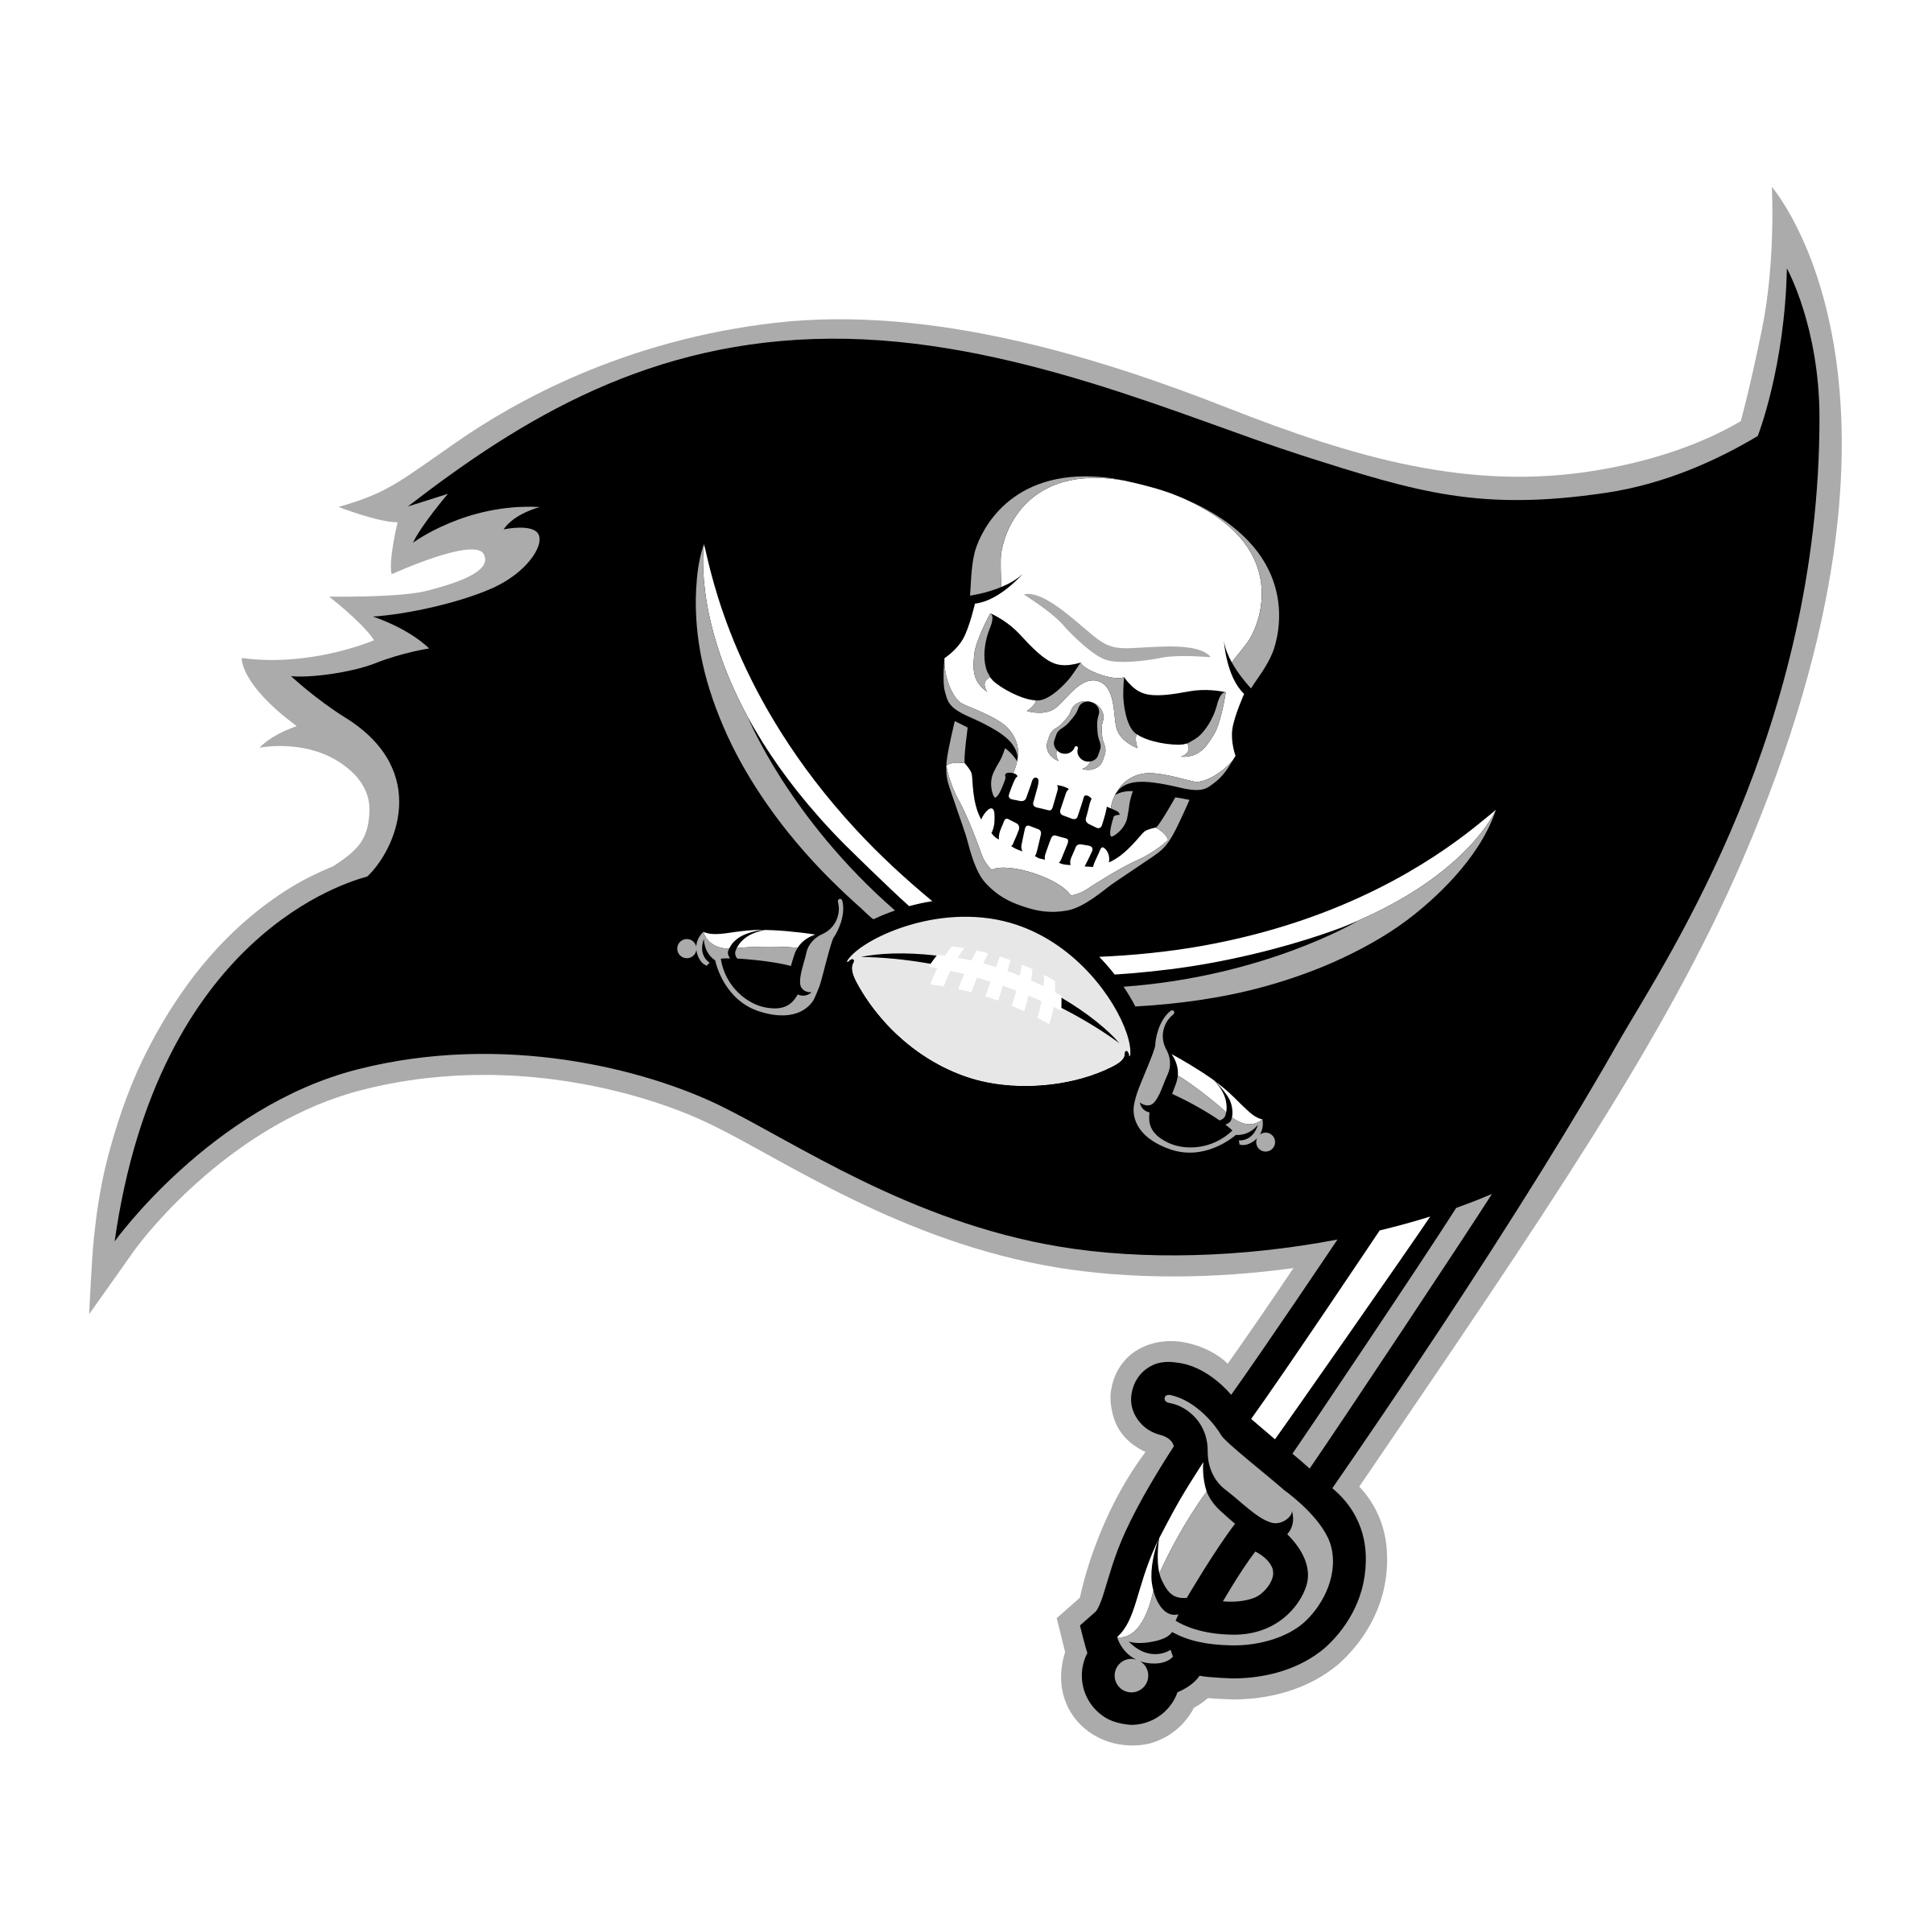 Tampa Bay Buccaneers: Tampa Bay Buccaneers Logo PNG Transparent & SVG Vector